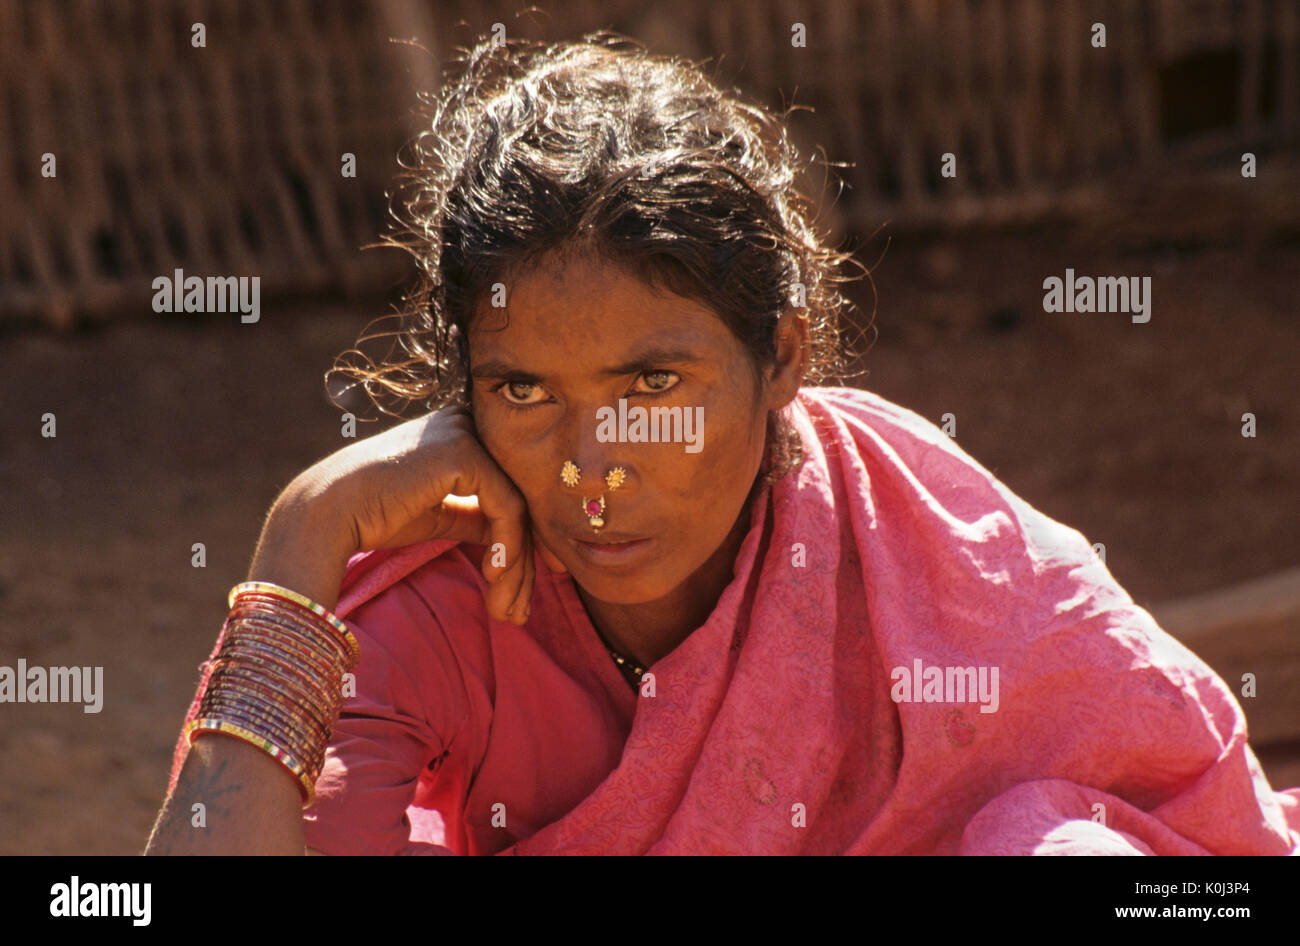 Saora tribal woman, Odisha (Orissa), India Stock Photo